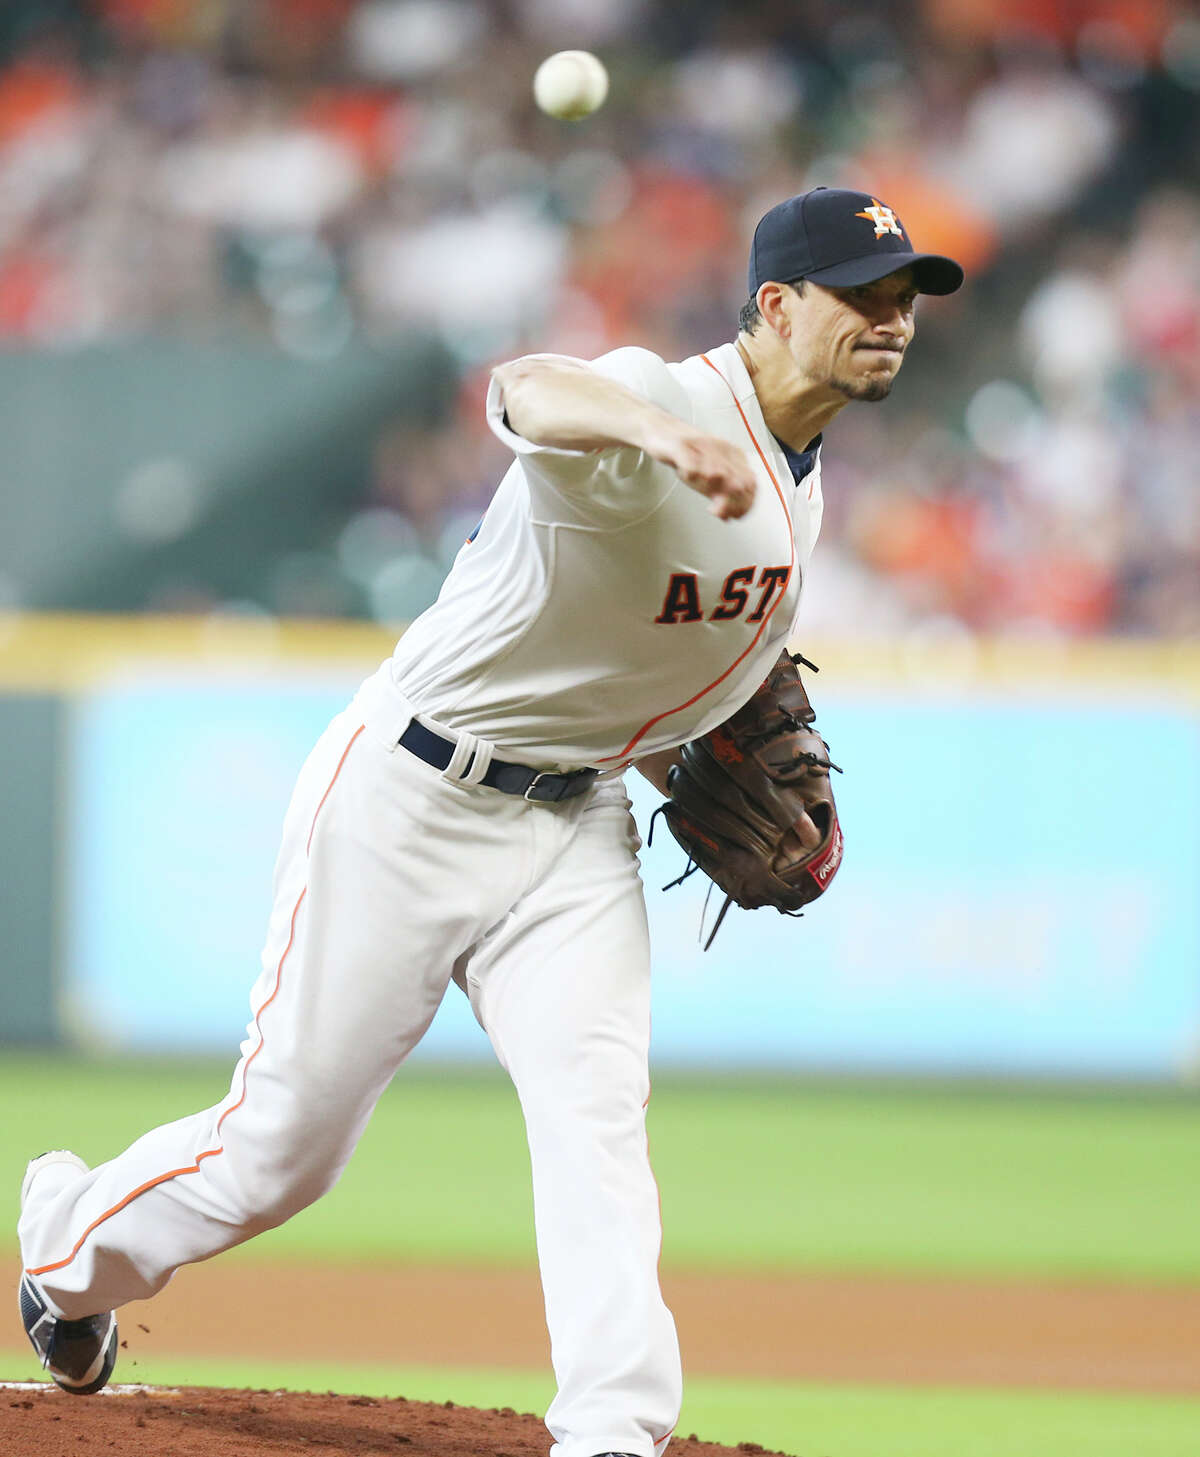 Houston Astros starting pitcher Charlie Morton (50) pitches in the first inning against the Chicago White Sox at Minute Maid Park on Saturday, July 7, 2018 in Houston.